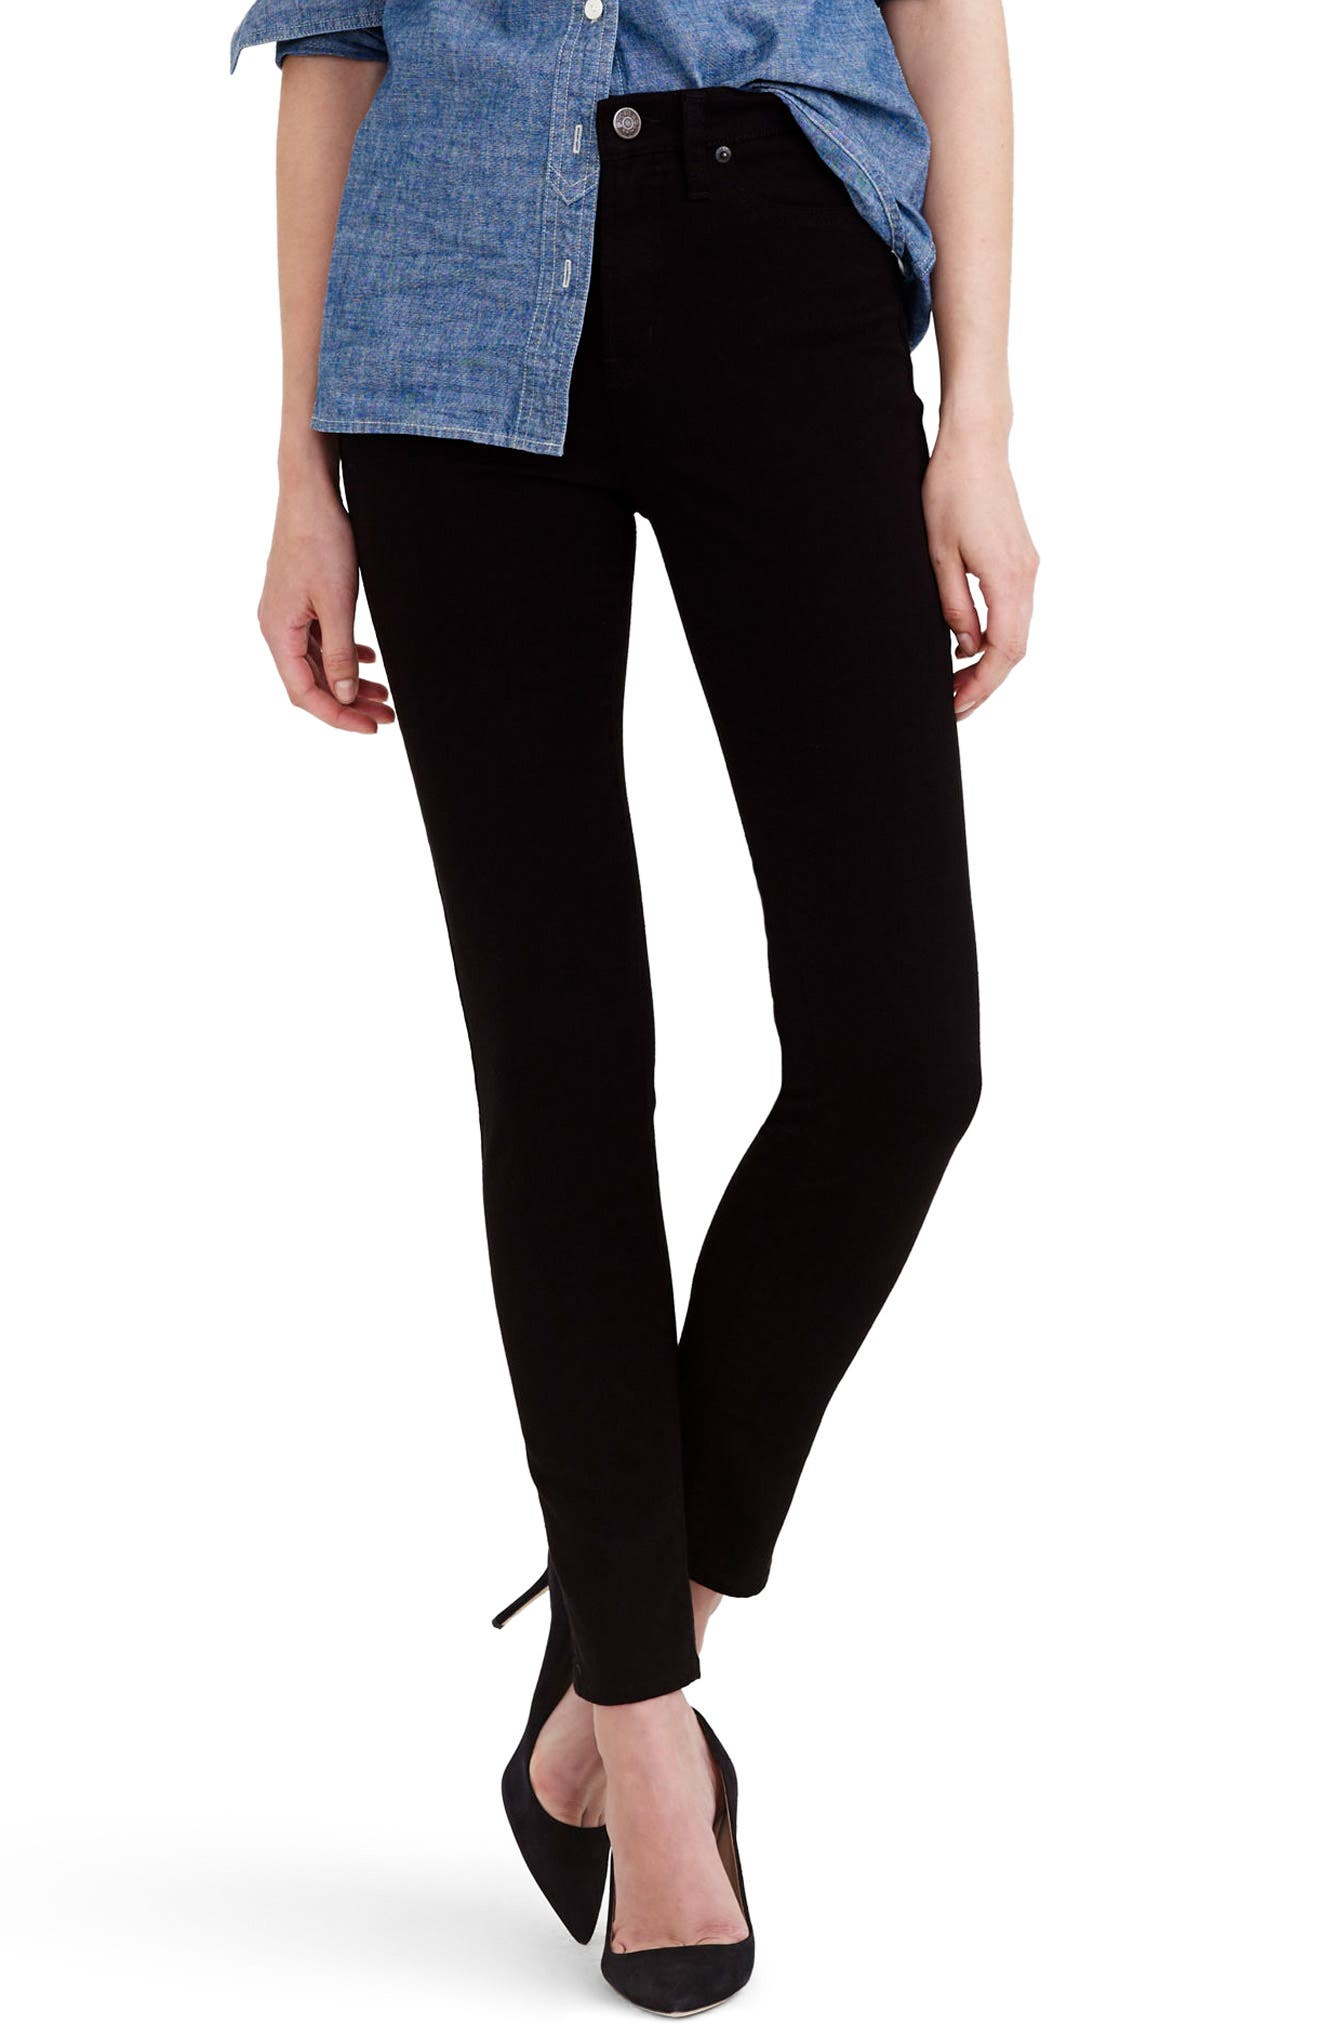 Main Image - J.Crew Lookout High Rise Jeans (Regular & Petite)